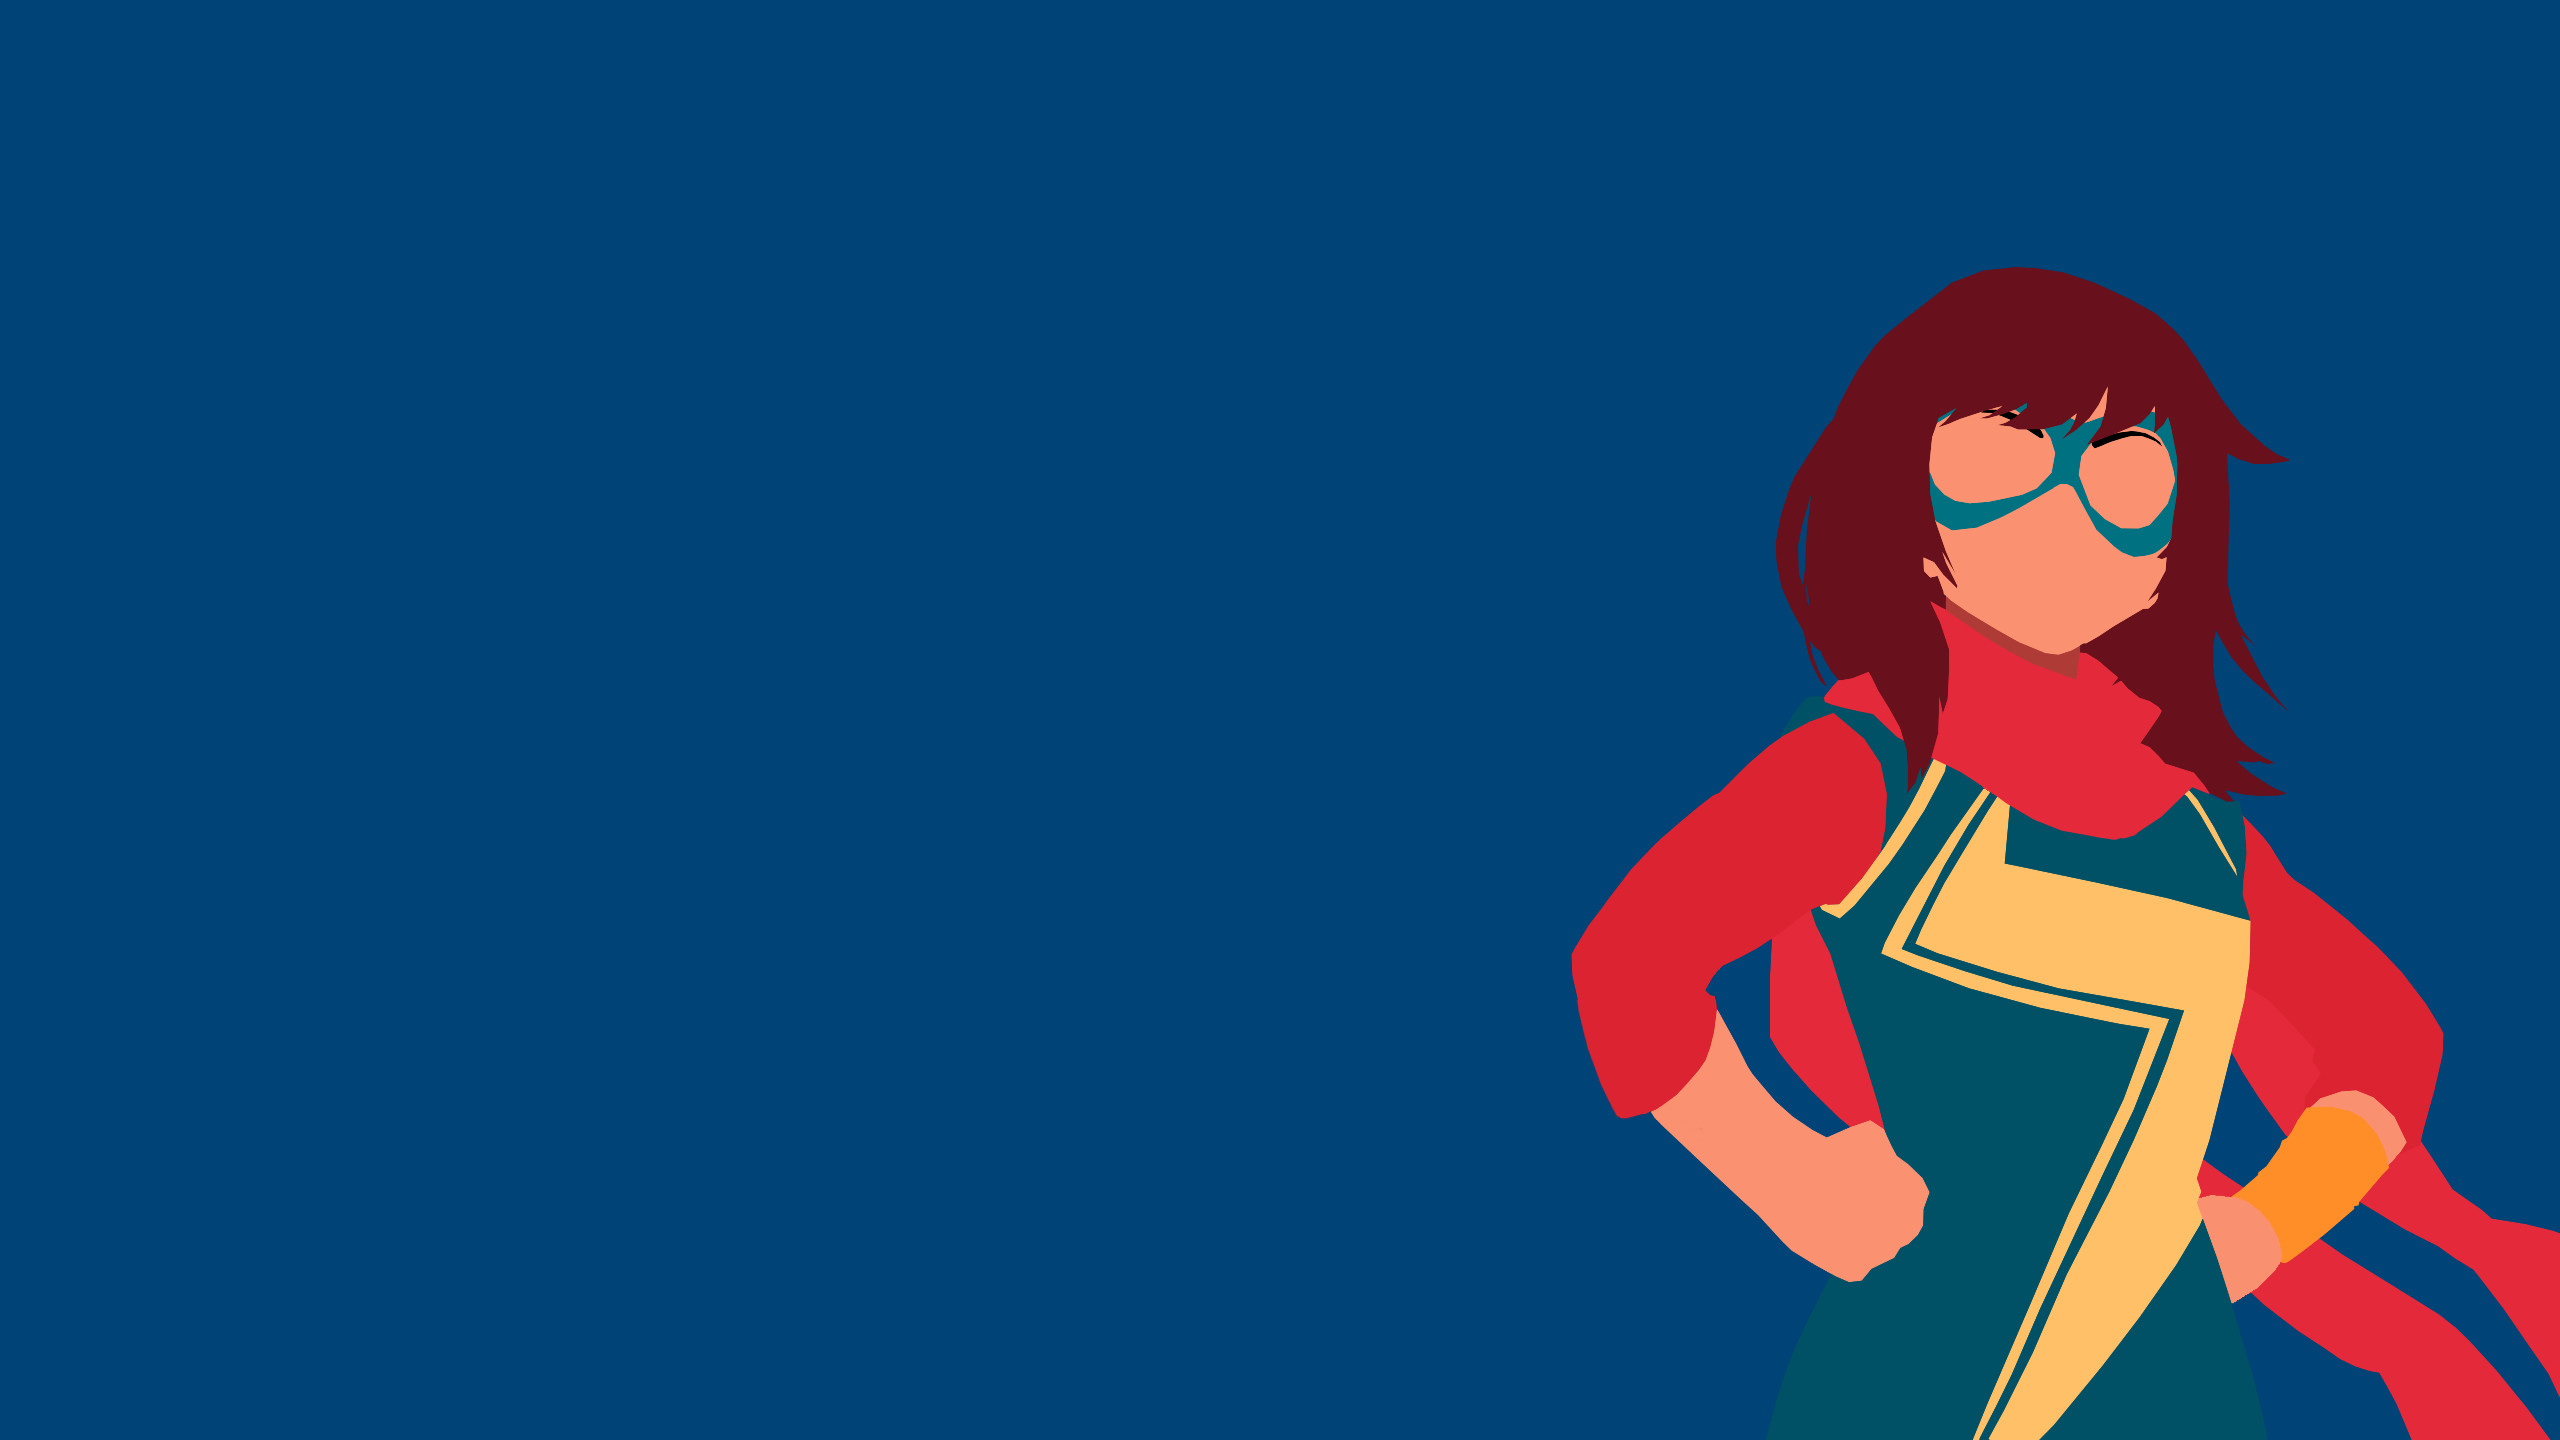 Made a minimalist style Ms. Marvel wallpaper since I couldn't find one that  I liked.